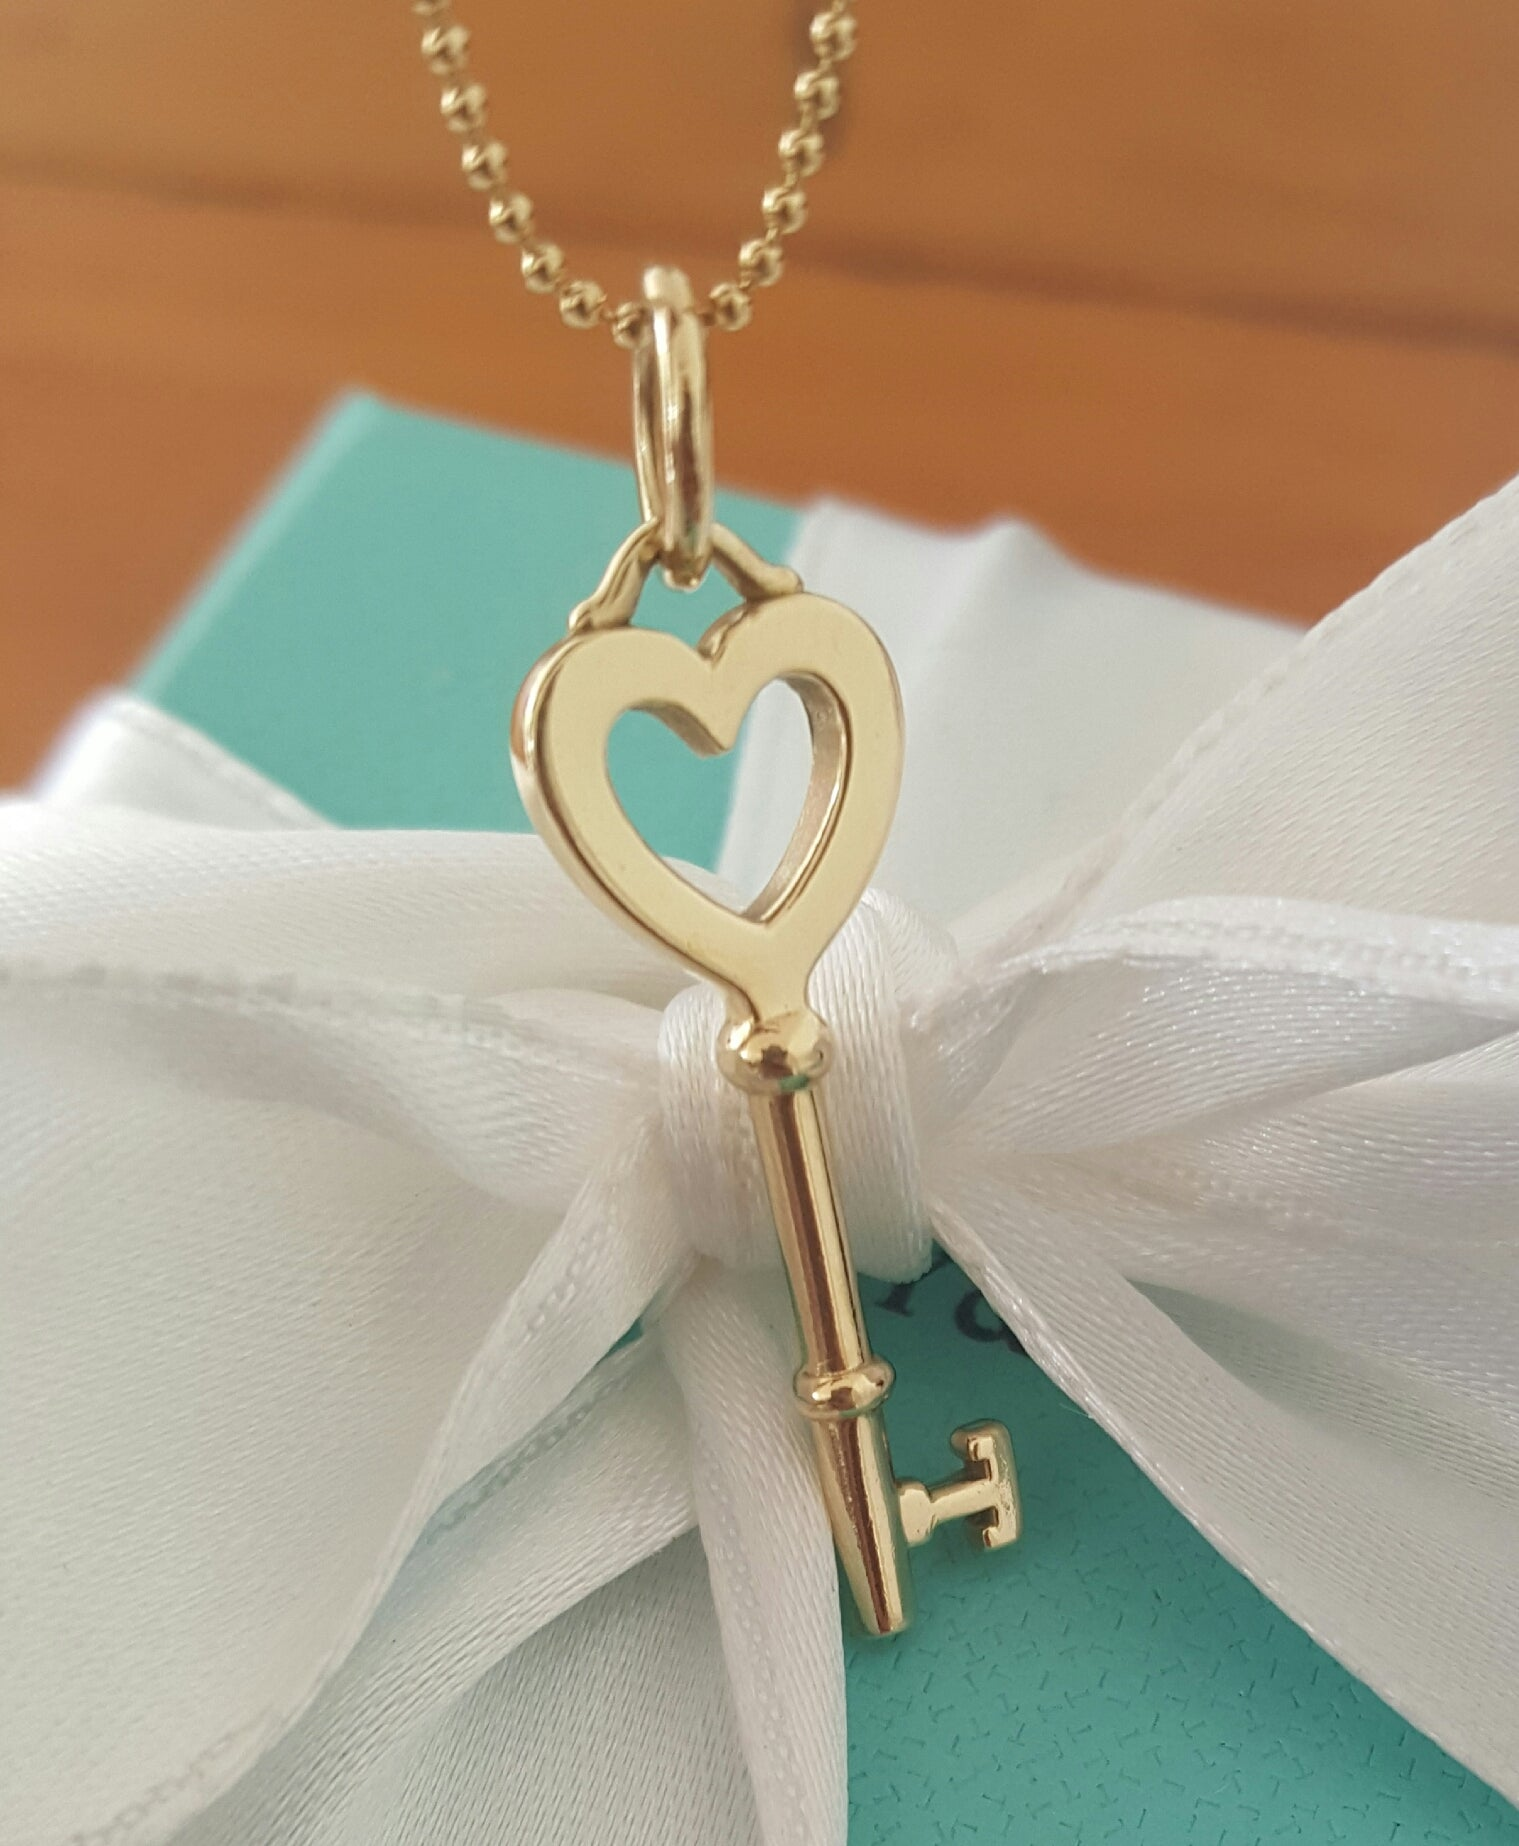 Tiffany co 18ct yellow gold key pendant necklace on 18ct gold 18ct yellow gold key pendant necklace on 18ct gold bead chain mozeypictures Choice Image